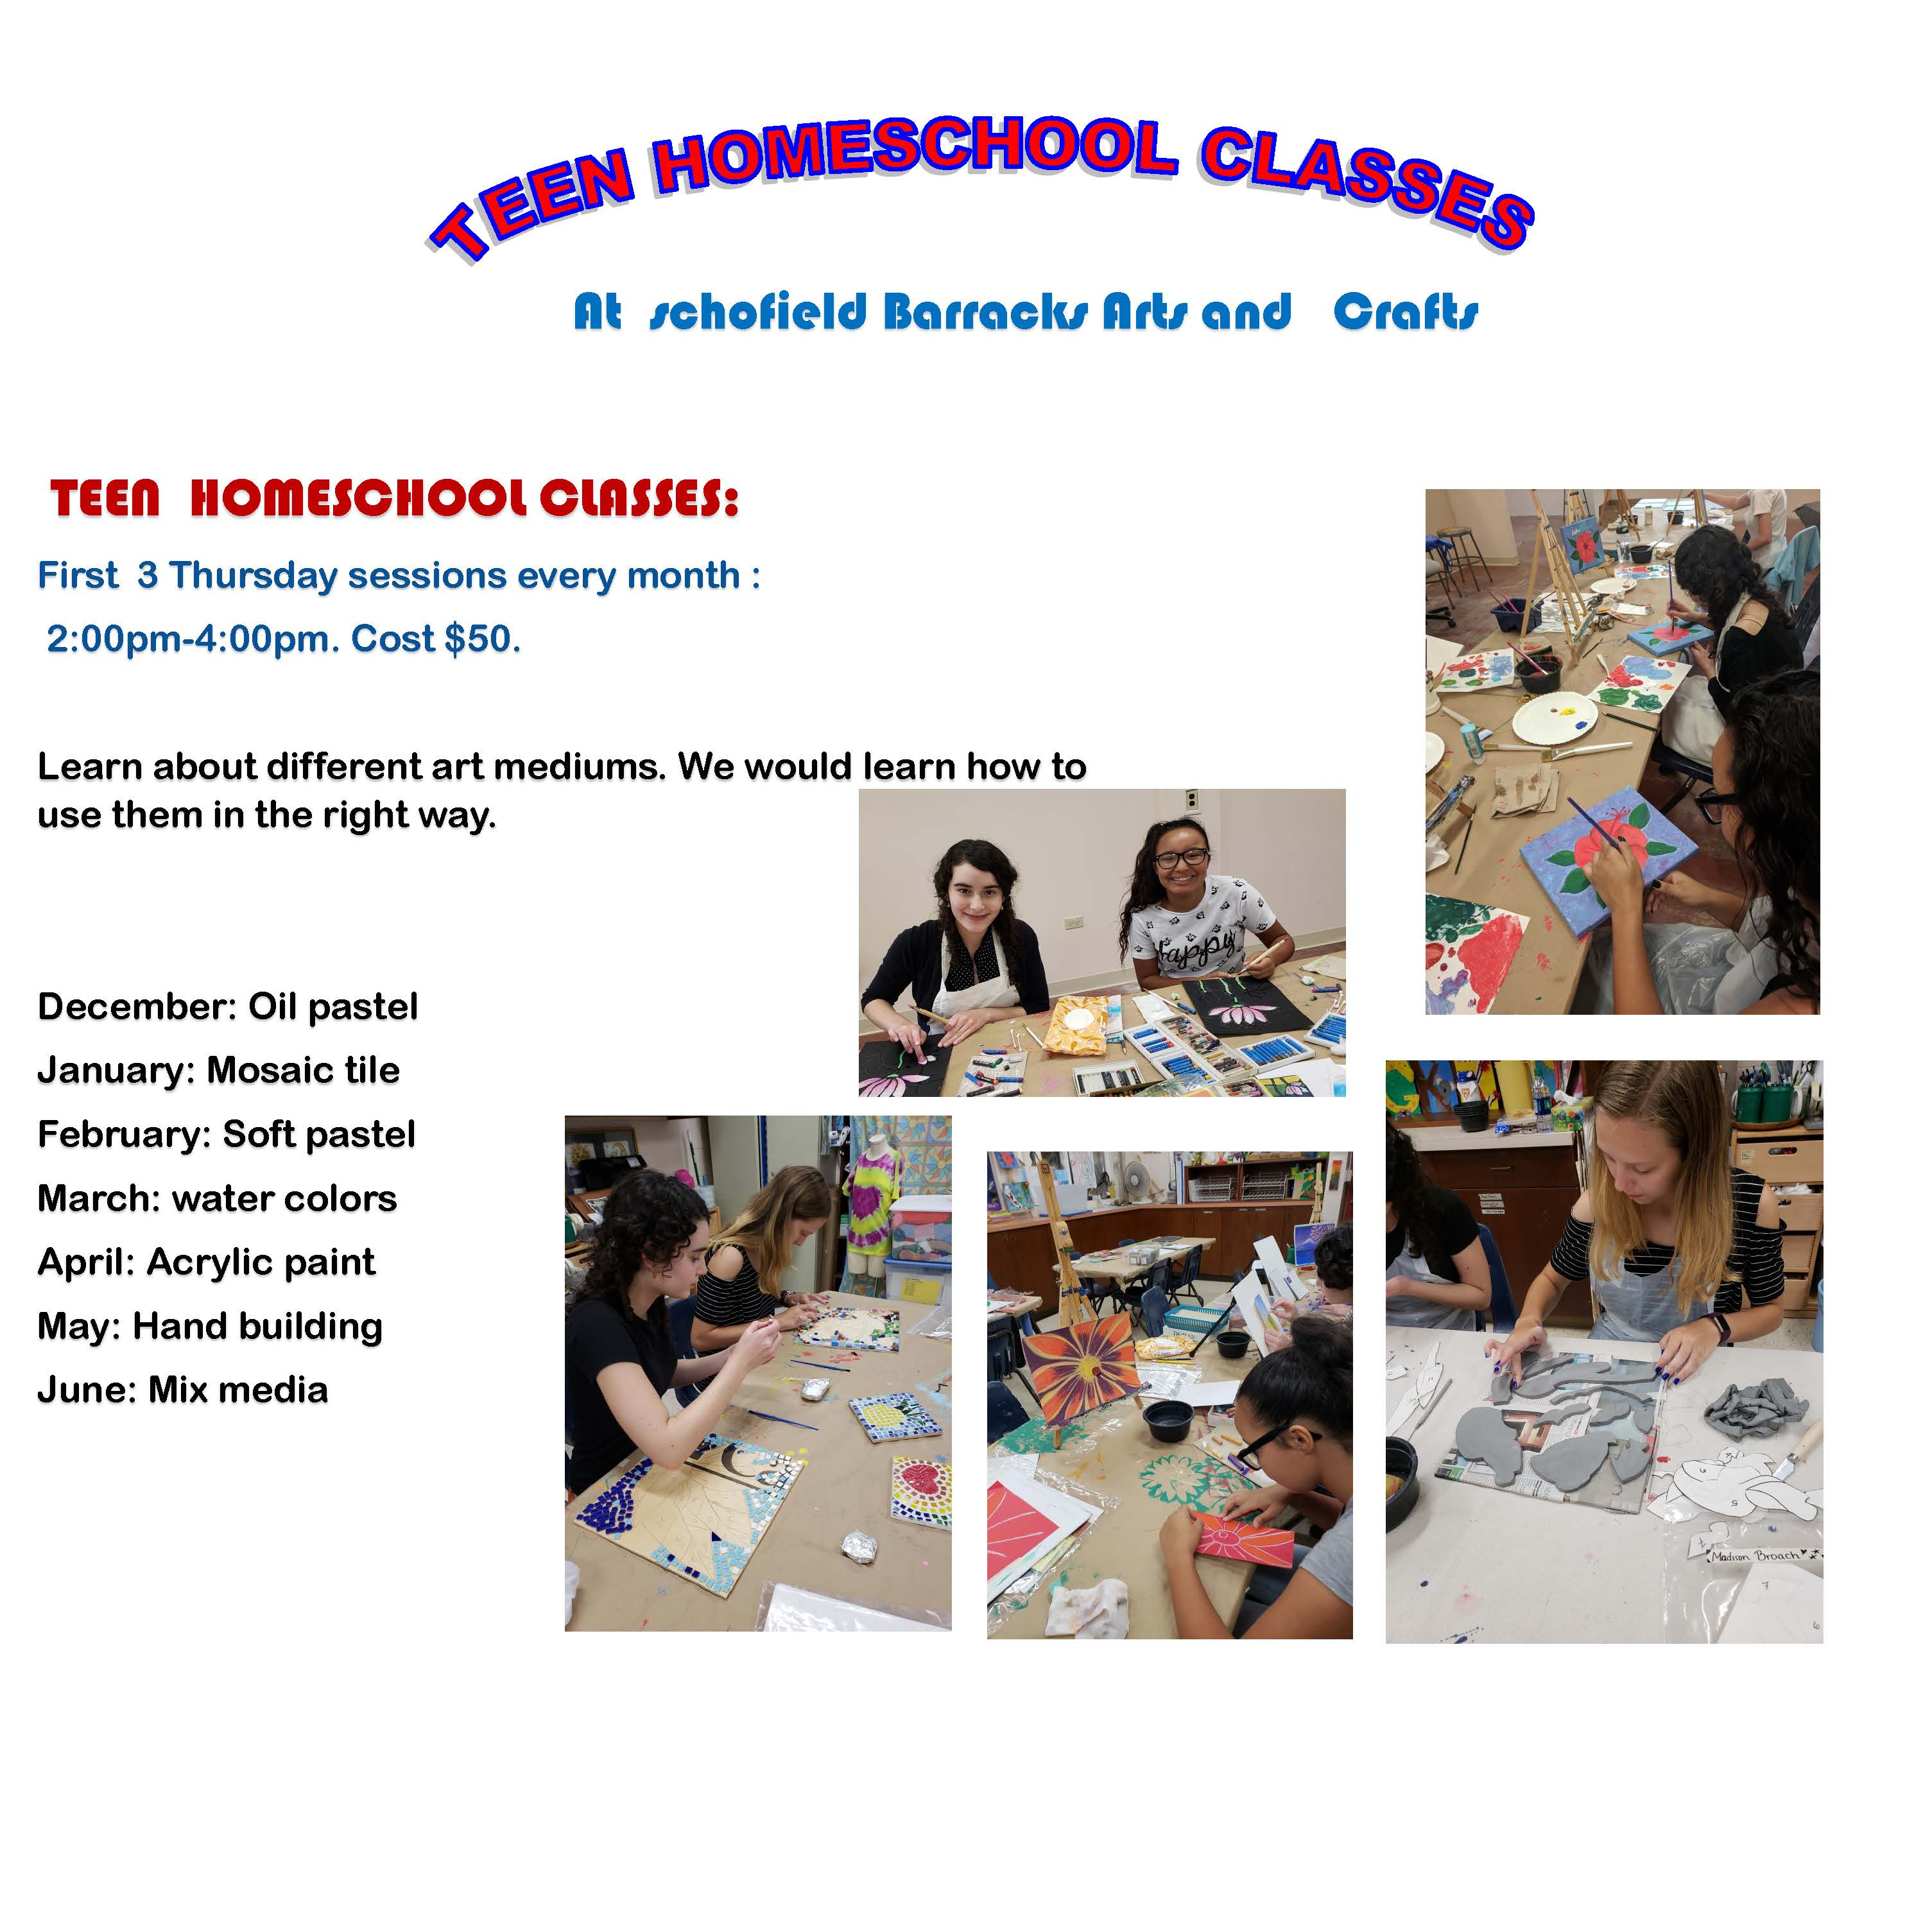 new_teen_homeschool_classes_flyers_FY19_Dec.-June.jpg